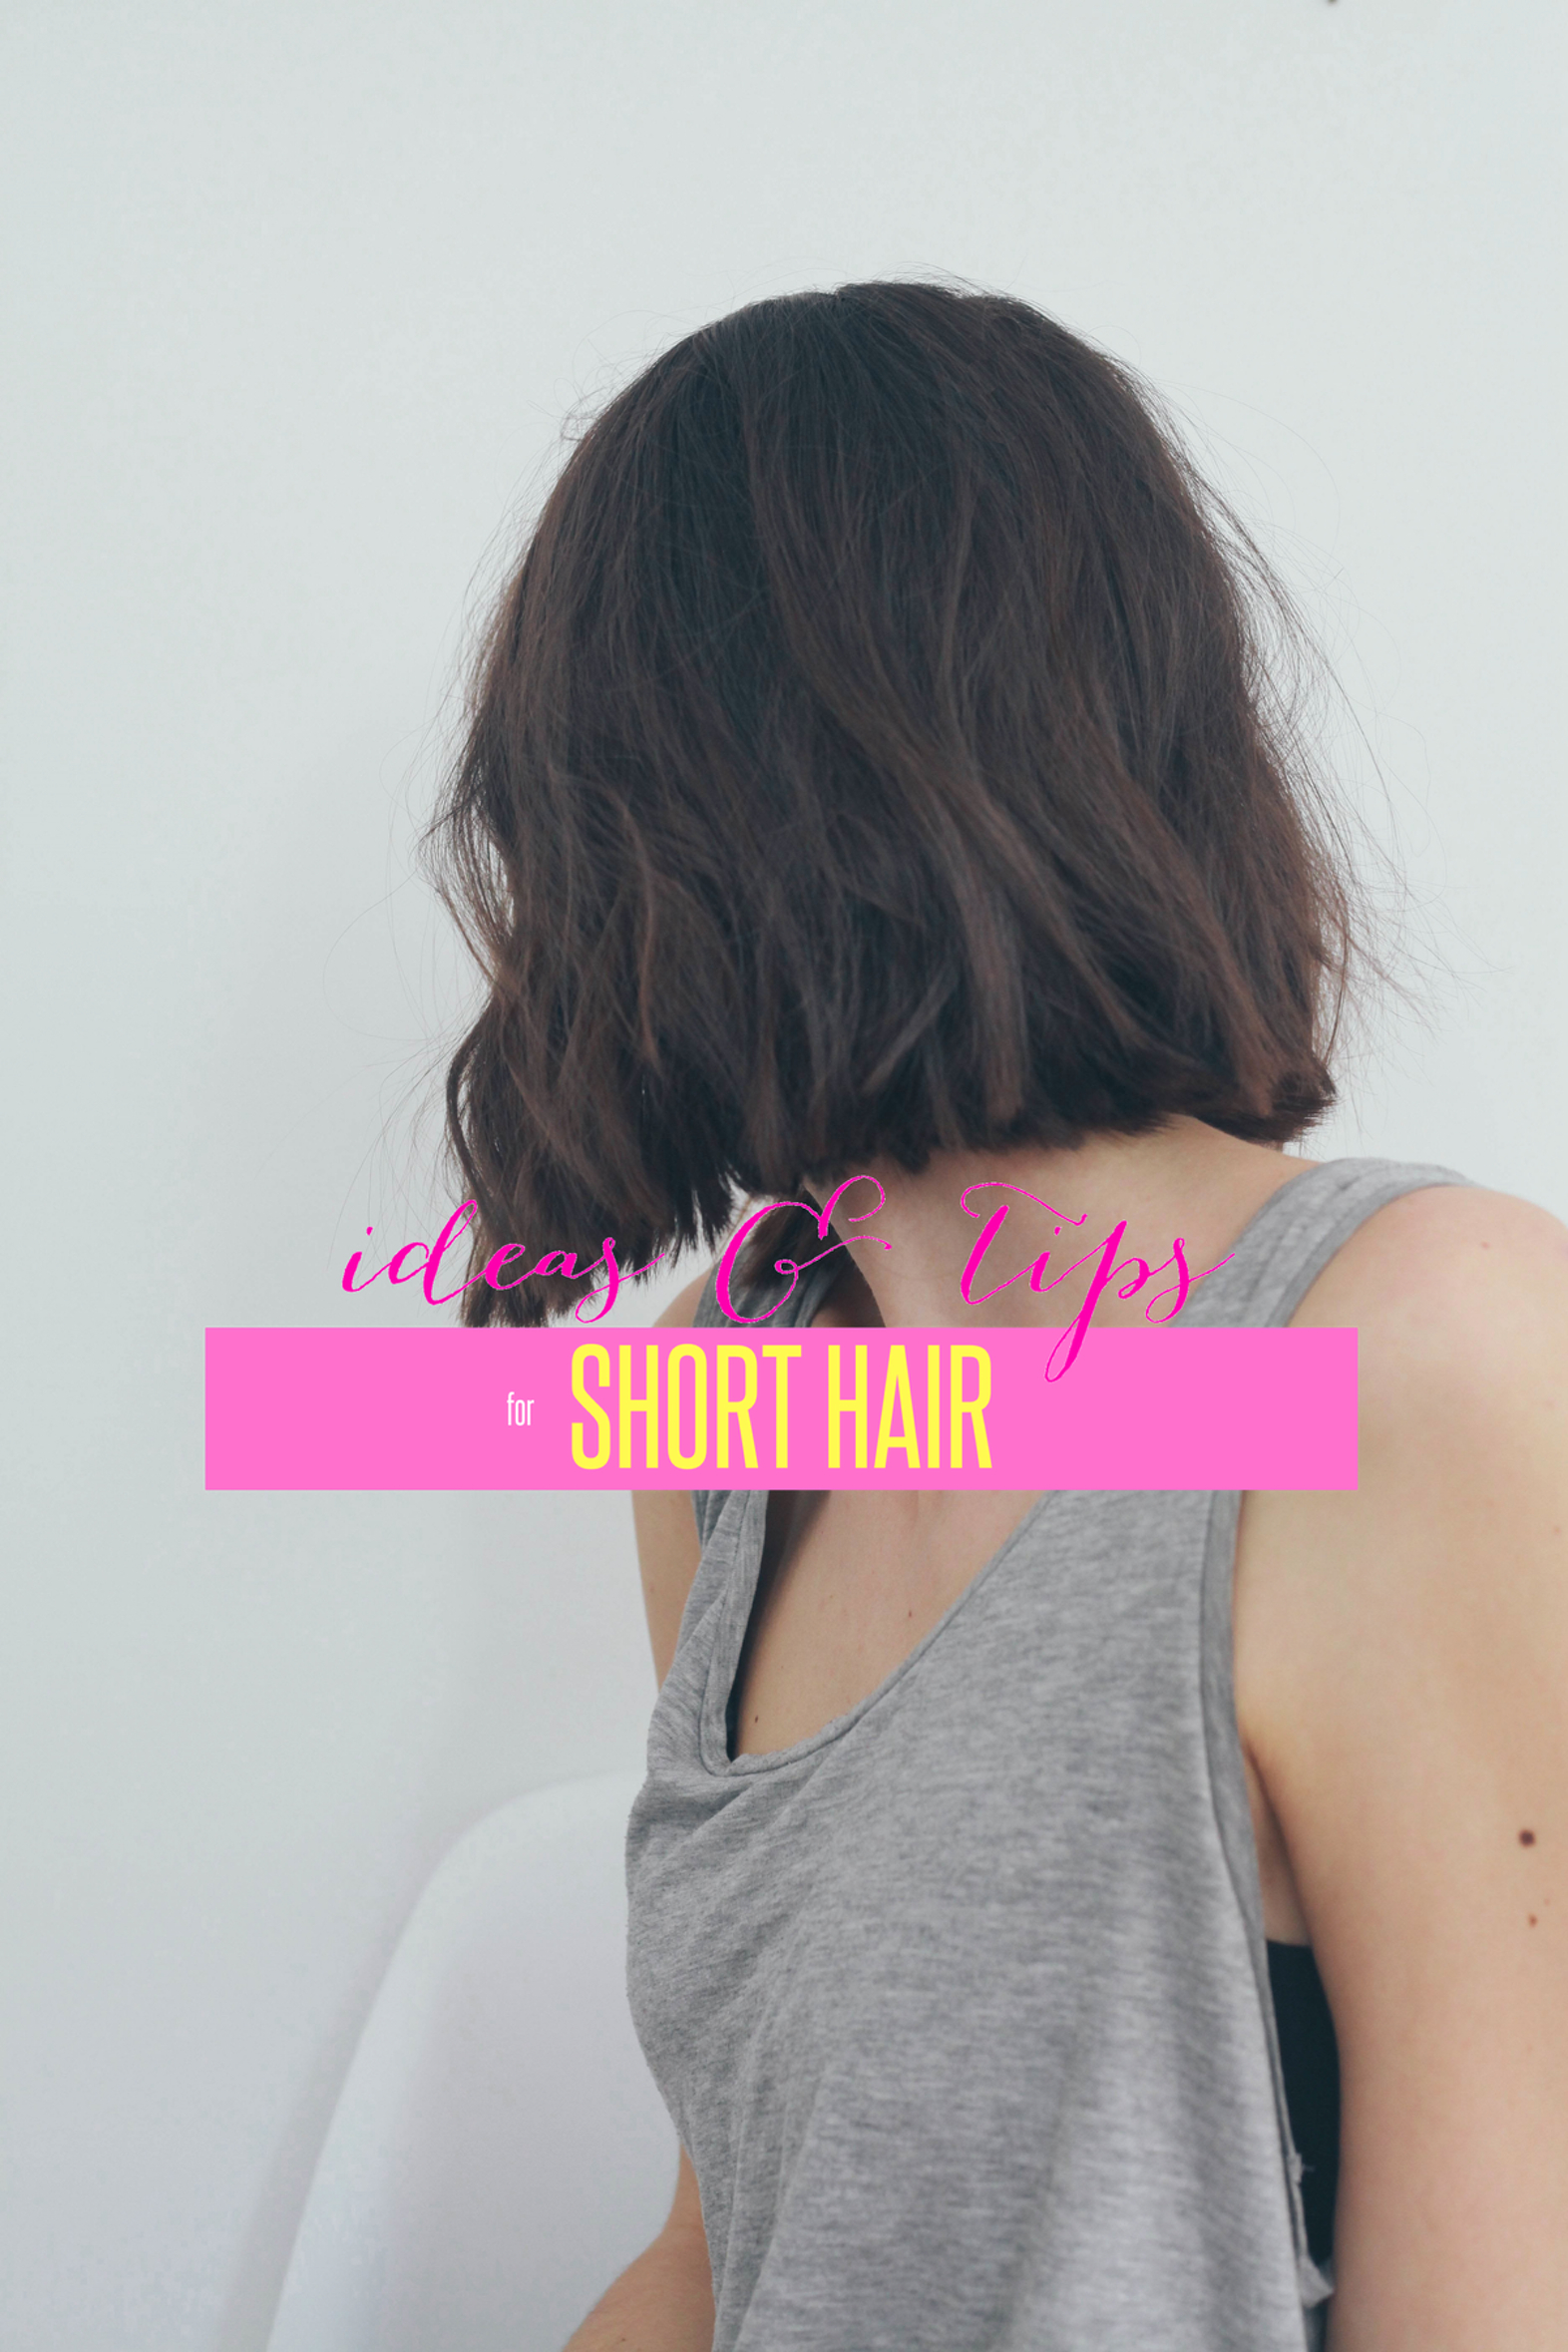 short hair ideas and tips.jpg